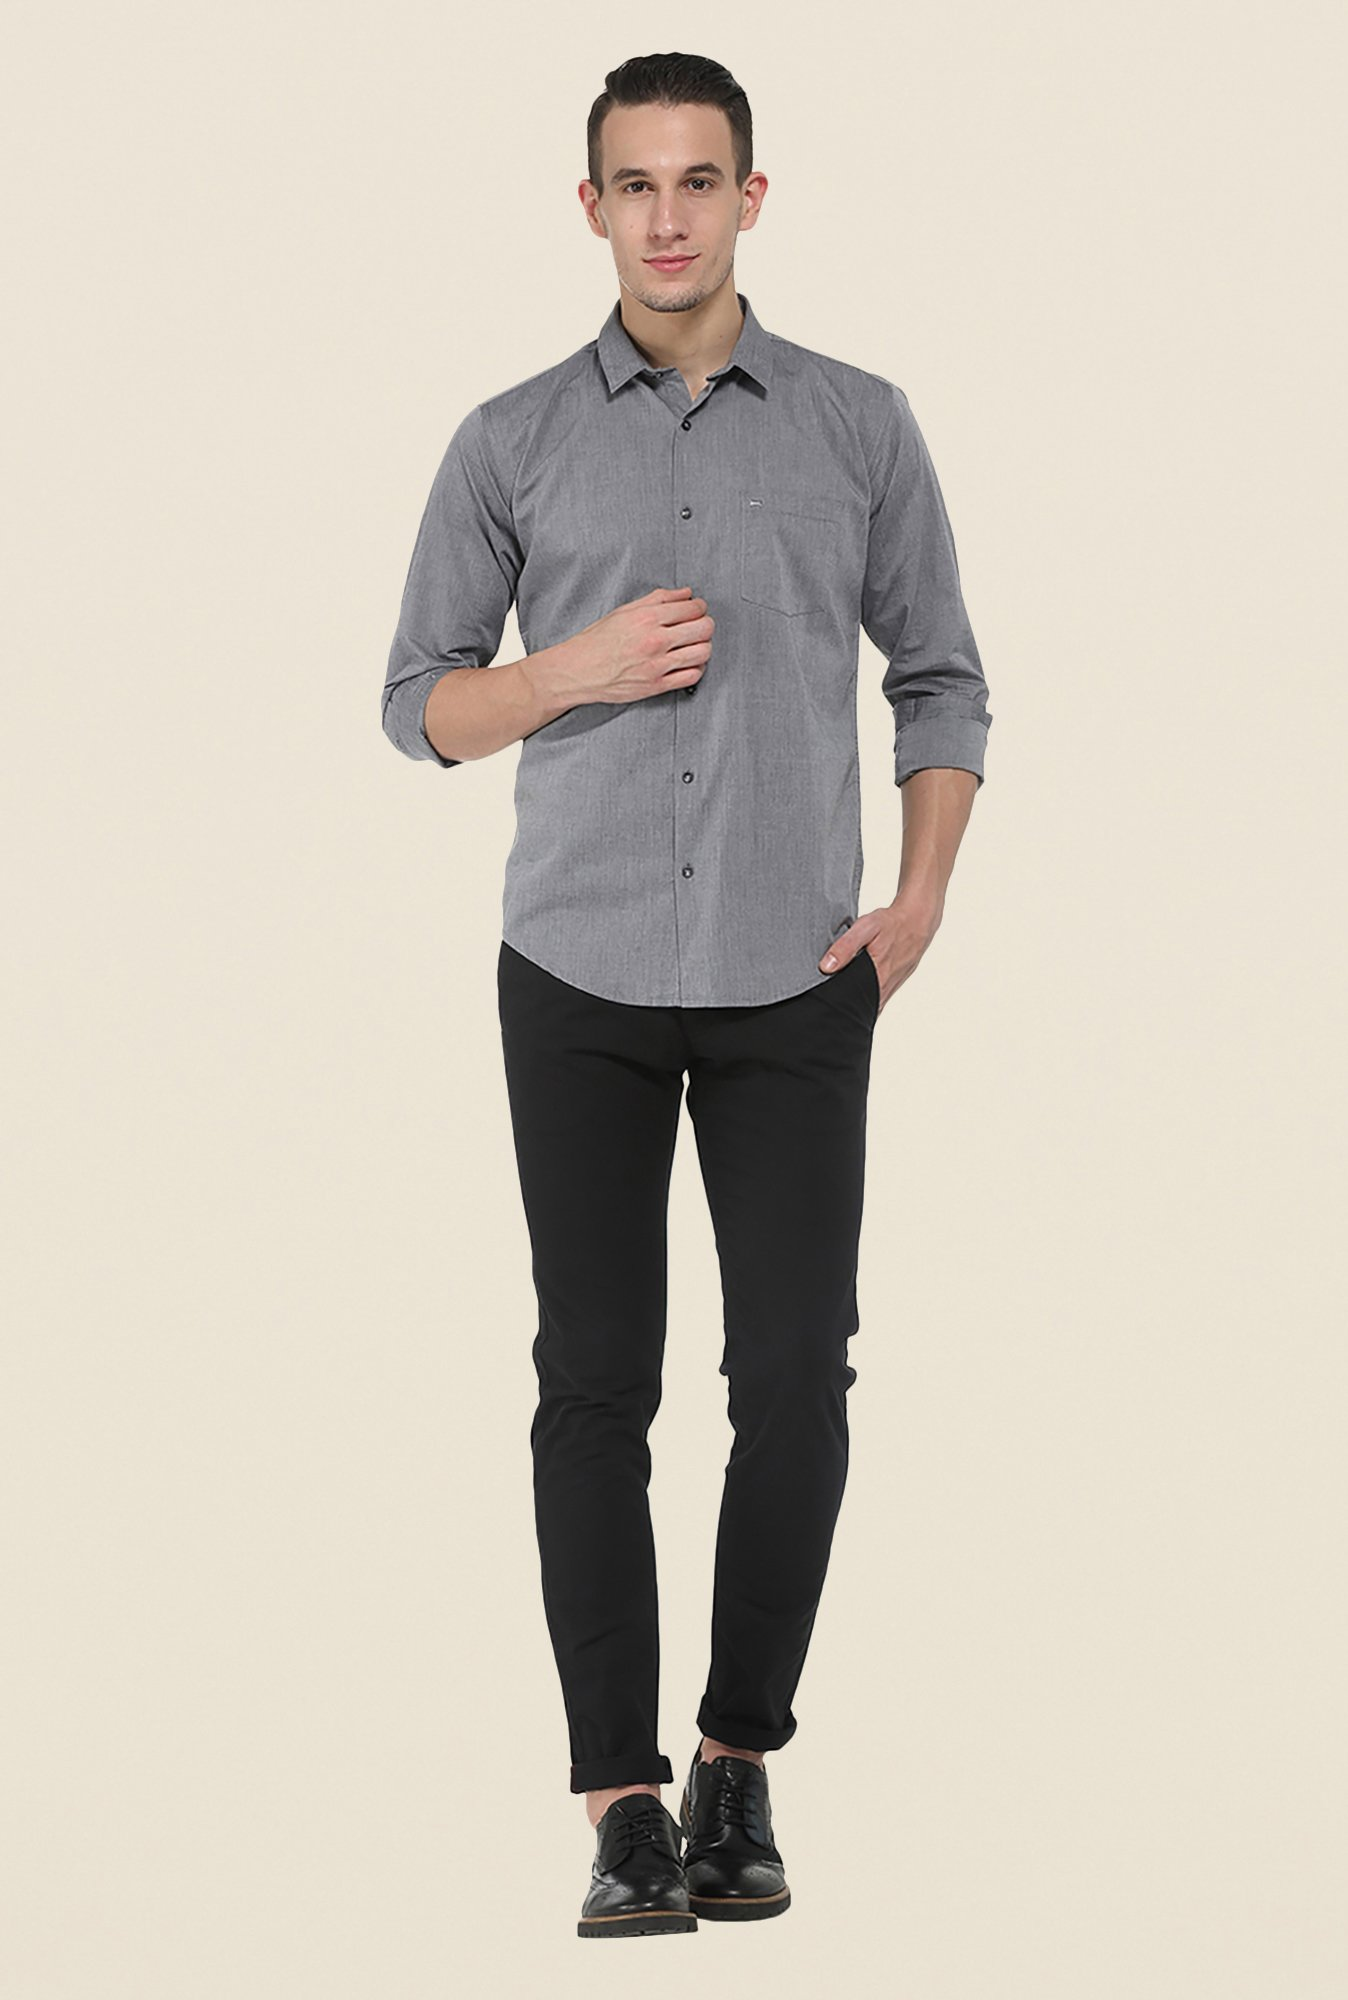 Basics Black Solid Tapered chinos